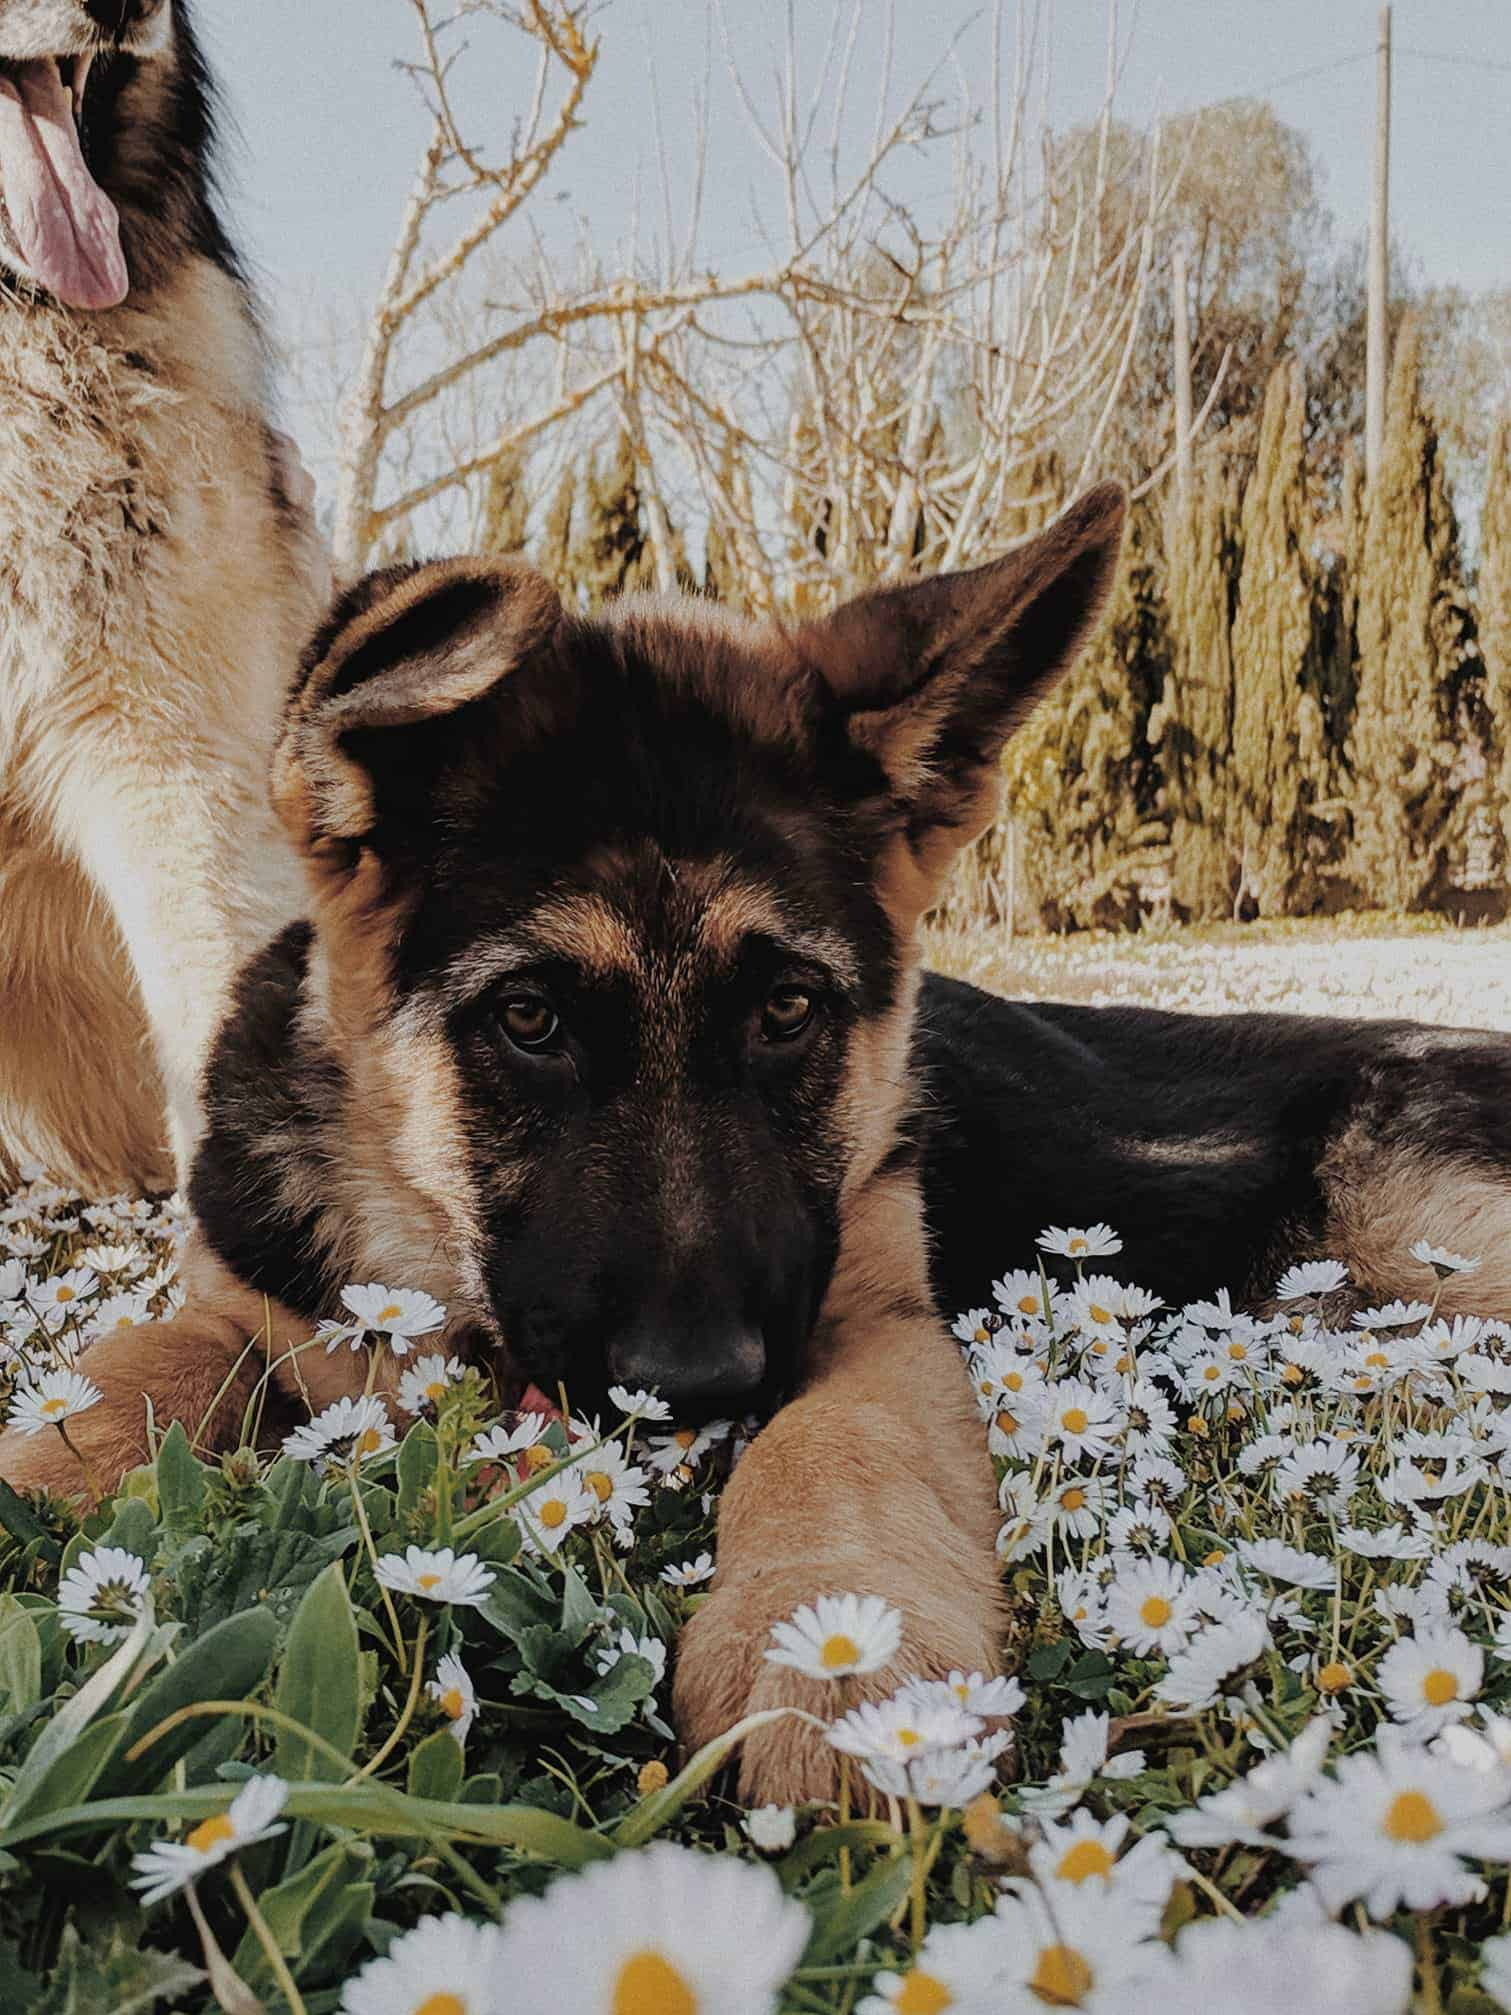 A German shepherd puppy lies on a field full of daisies